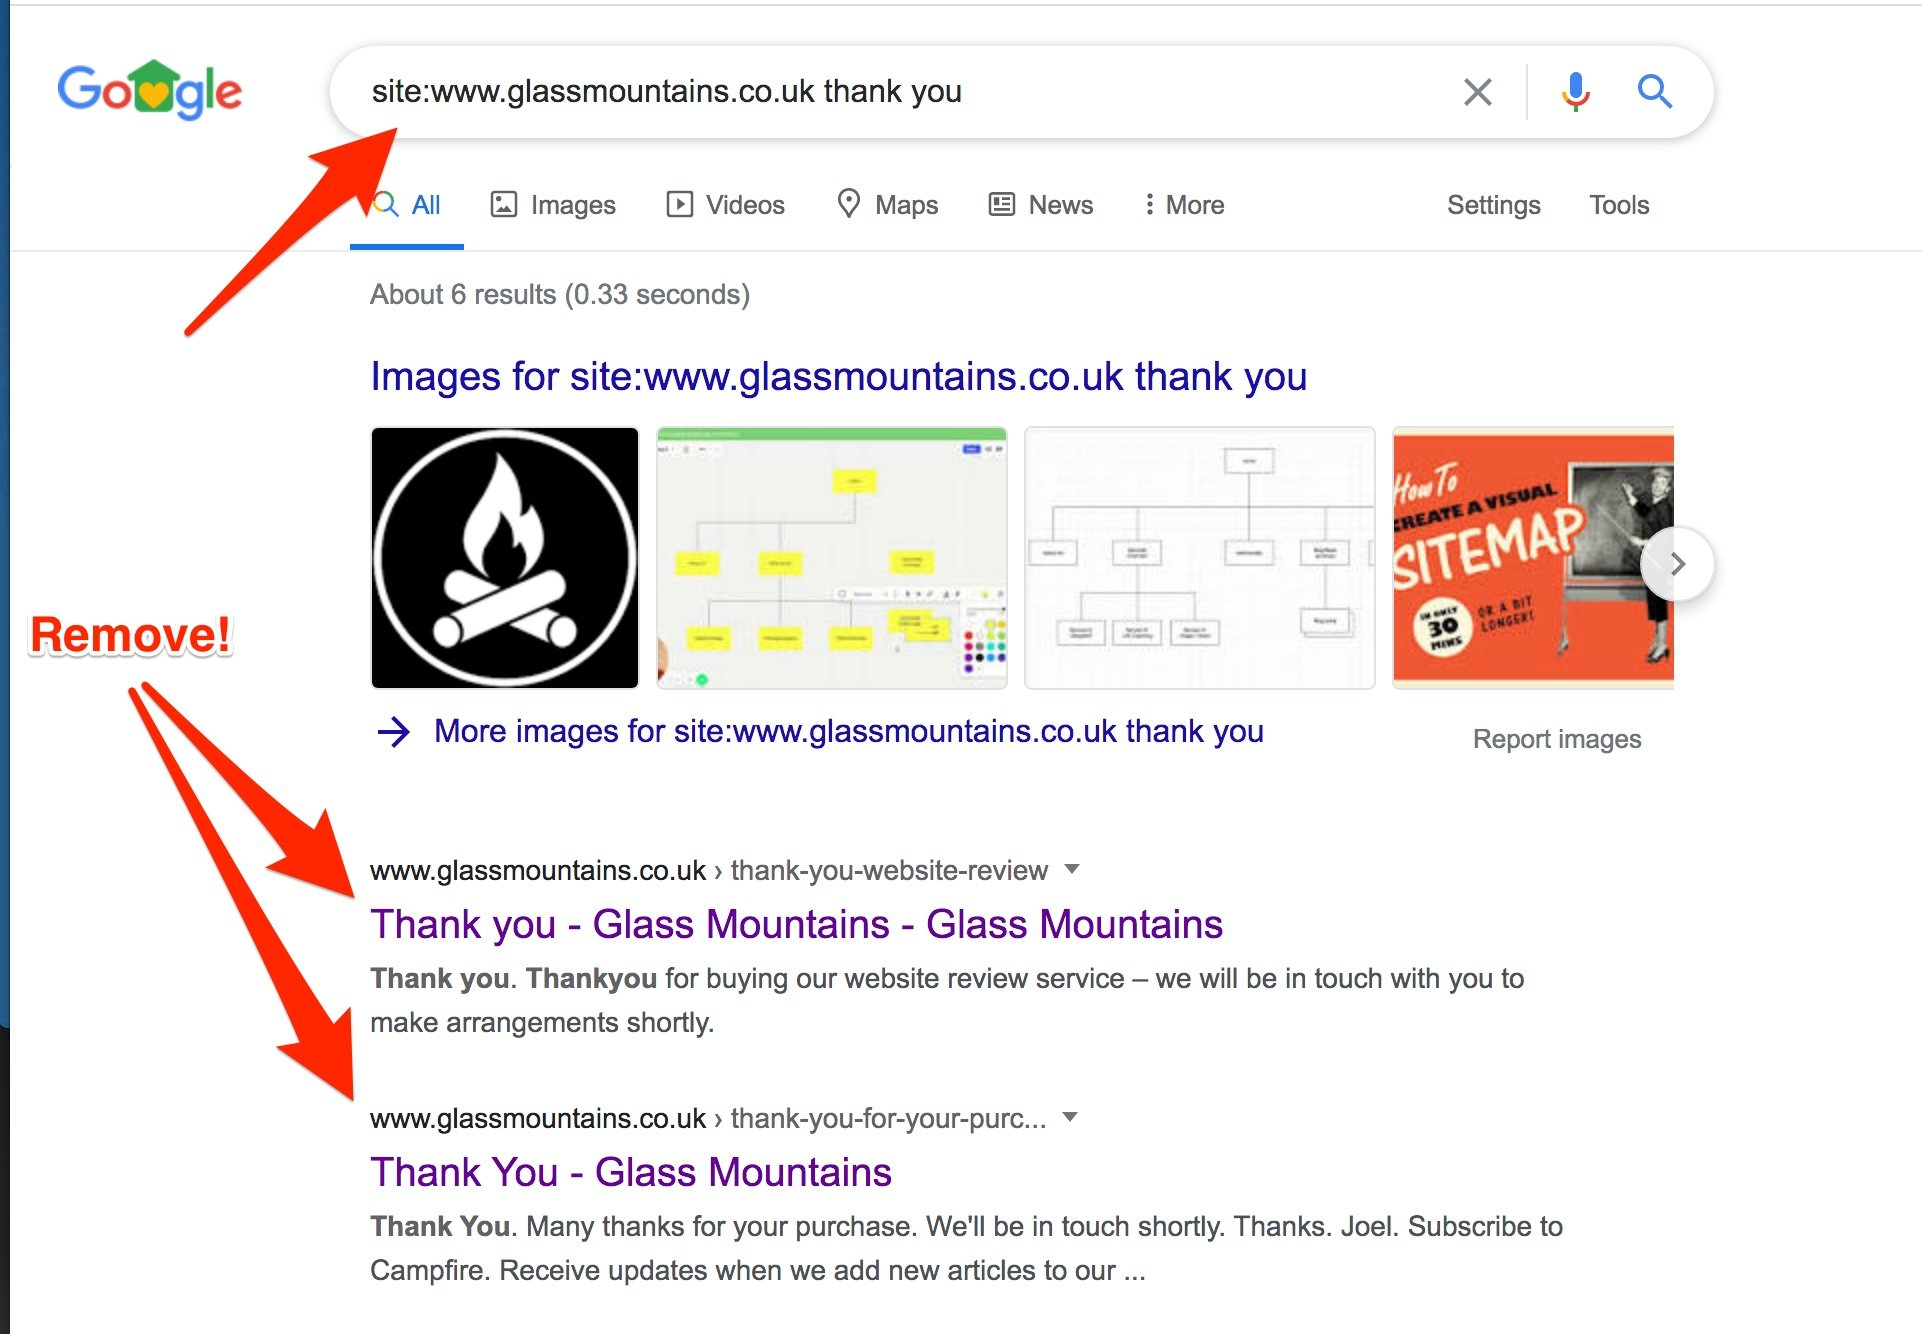 A site:www.glassmountains.co.uk search revealed issues….